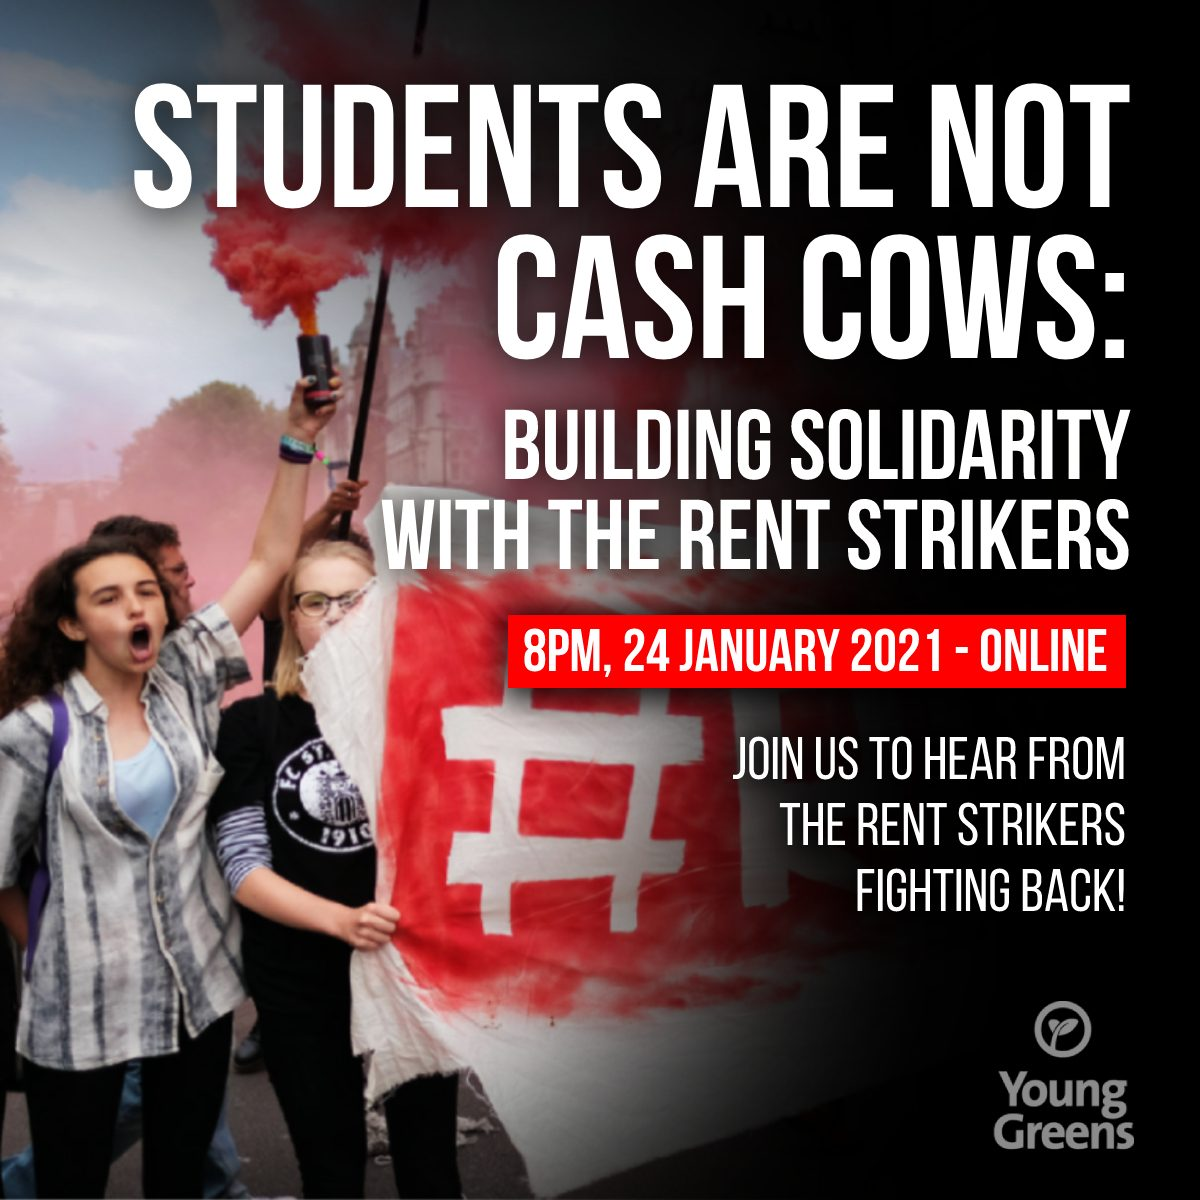 Students are not cash cows: building solidarity with the rent strikers. Img: Young person with a red flare in the air, with other protestors